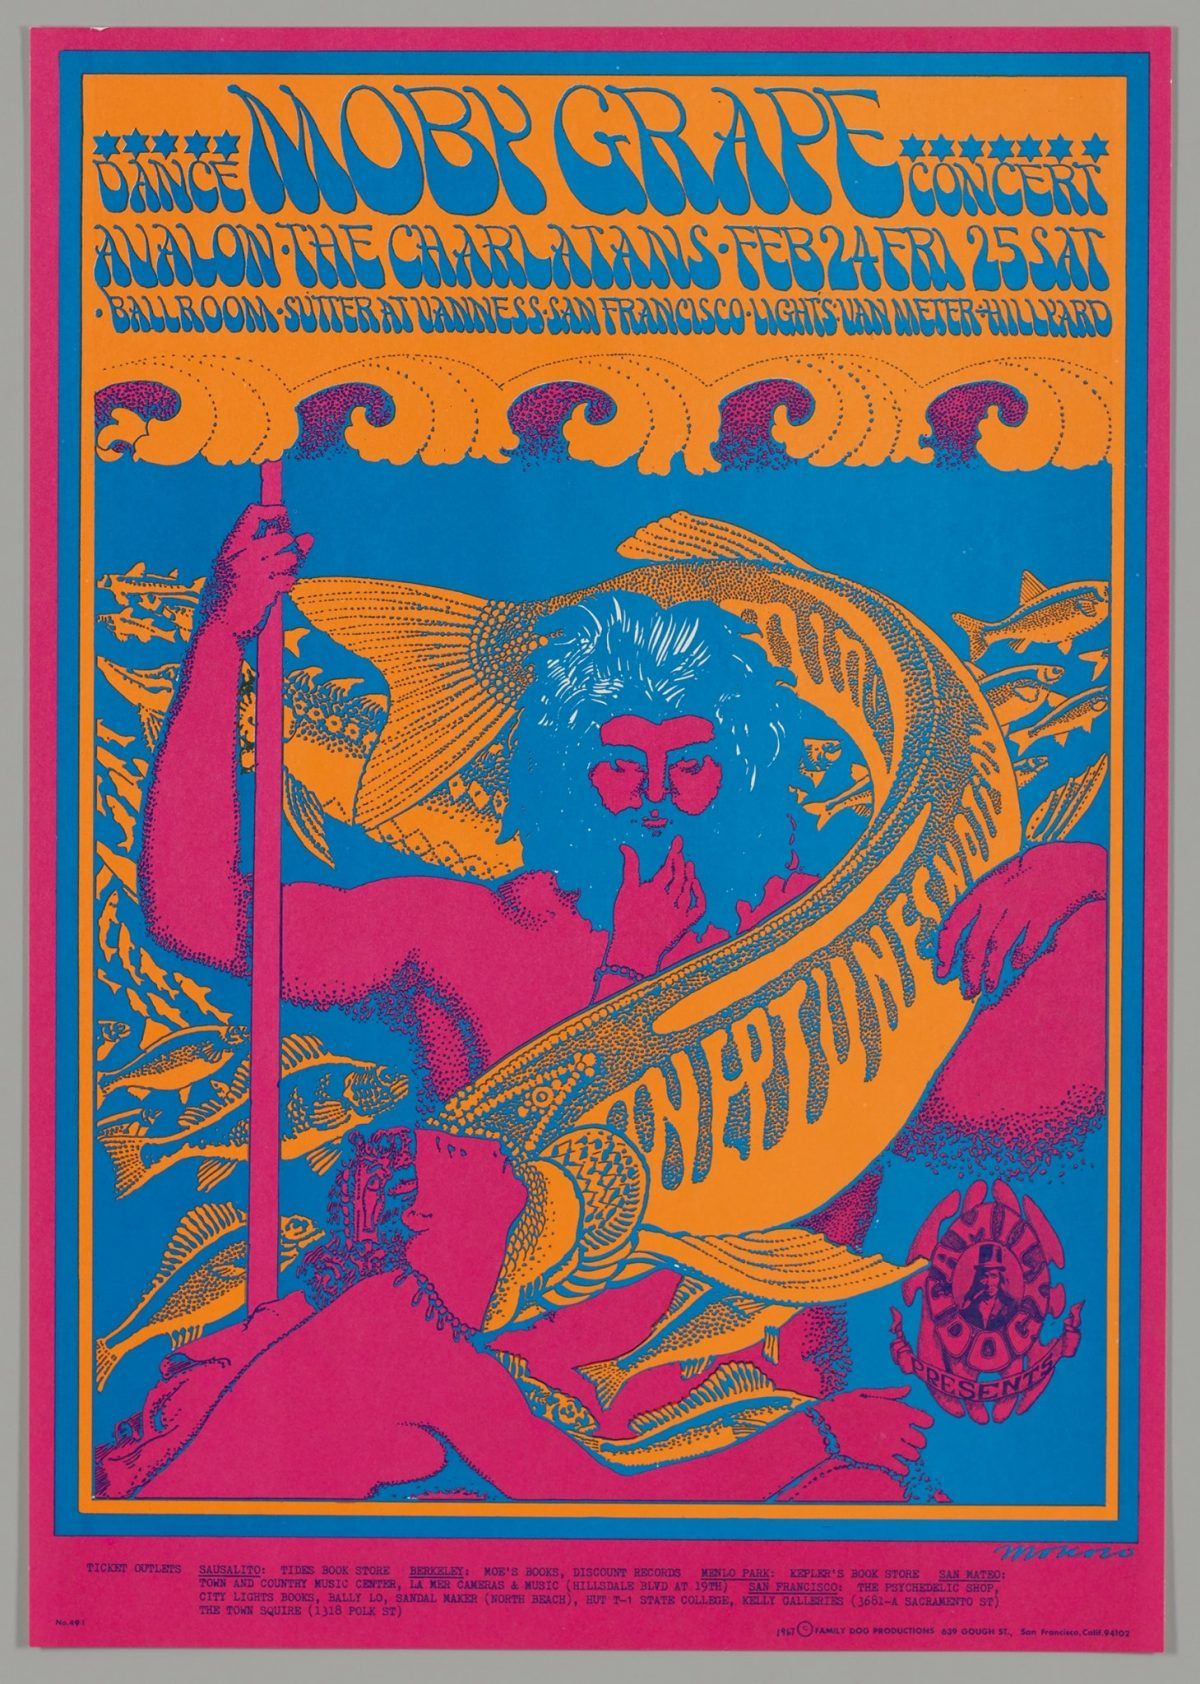 """Neptune's Notion, Victor Moscoso, 1967, color offset lithograph on paper, image/sheet:22 x 14 inches. A brightly colored, vertical poster depicting Neptune being encircled by a large fish and topped with concert details in organic, psychedelic font. Bright blue letters against a pale orange ground read: """"Moby Grape"""" at center top, flanked by the words """"Dance Concert"""" under a row of blue stars. Below, two lines of text read: """"Avalon, The Charlatans, Feb 24 Fri, 25 Sat. Ballroom, Sutter at Van Ness San Francisco, Light Van Meter, Hillyard."""" A row of stylized purple waves on orange ground transitions to bright blue ground. Neptune is centered with a full head of hair and beard, details of his hair picked out in white line. Neptune's body is bright pink, and he holds a trident on the left and stretches out his other hand by his side. An orange and blue fish wraps around Neptune's head and torso with the words, """"Neptune's Notions"""" on its body. A female figure approaches Neptune from bottom right near the fish's mouth. Smaller orange fish on blue swim in the background. A small, oval logo reading """"Family Dog Presents"""" with a top hatted man is at lower right. The scene is outlined in orange, blue and bright pink borders. Additional ticket information is printed at bottom in small, plain black font."""